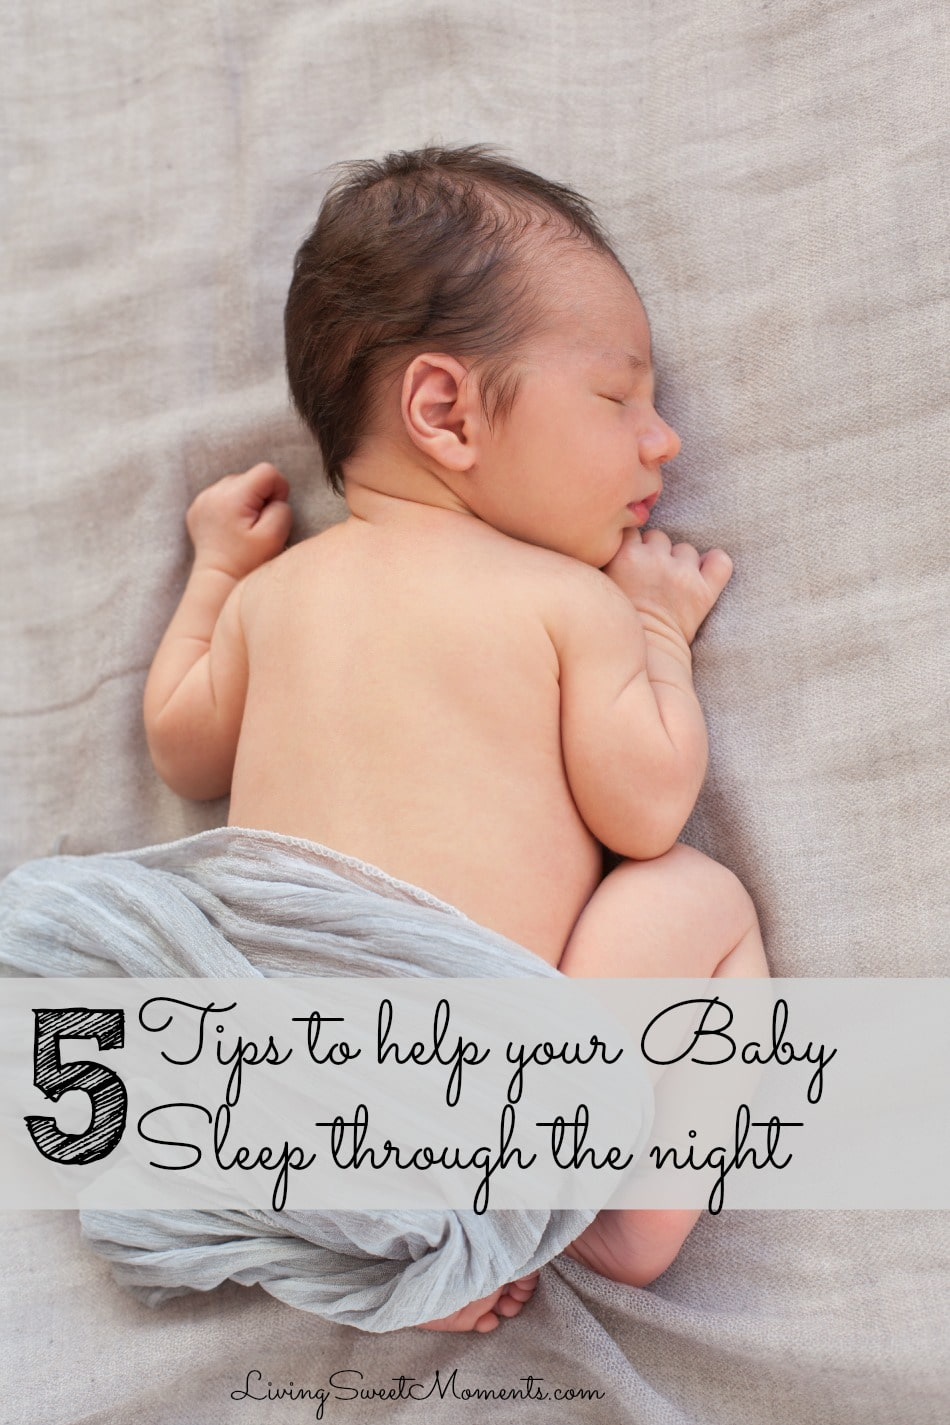 Here I present 5 proven tips to help your baby sleep through the night. Hopefully these easy tips will help your child ease off to sleep quickly and stay that way throughout the night.